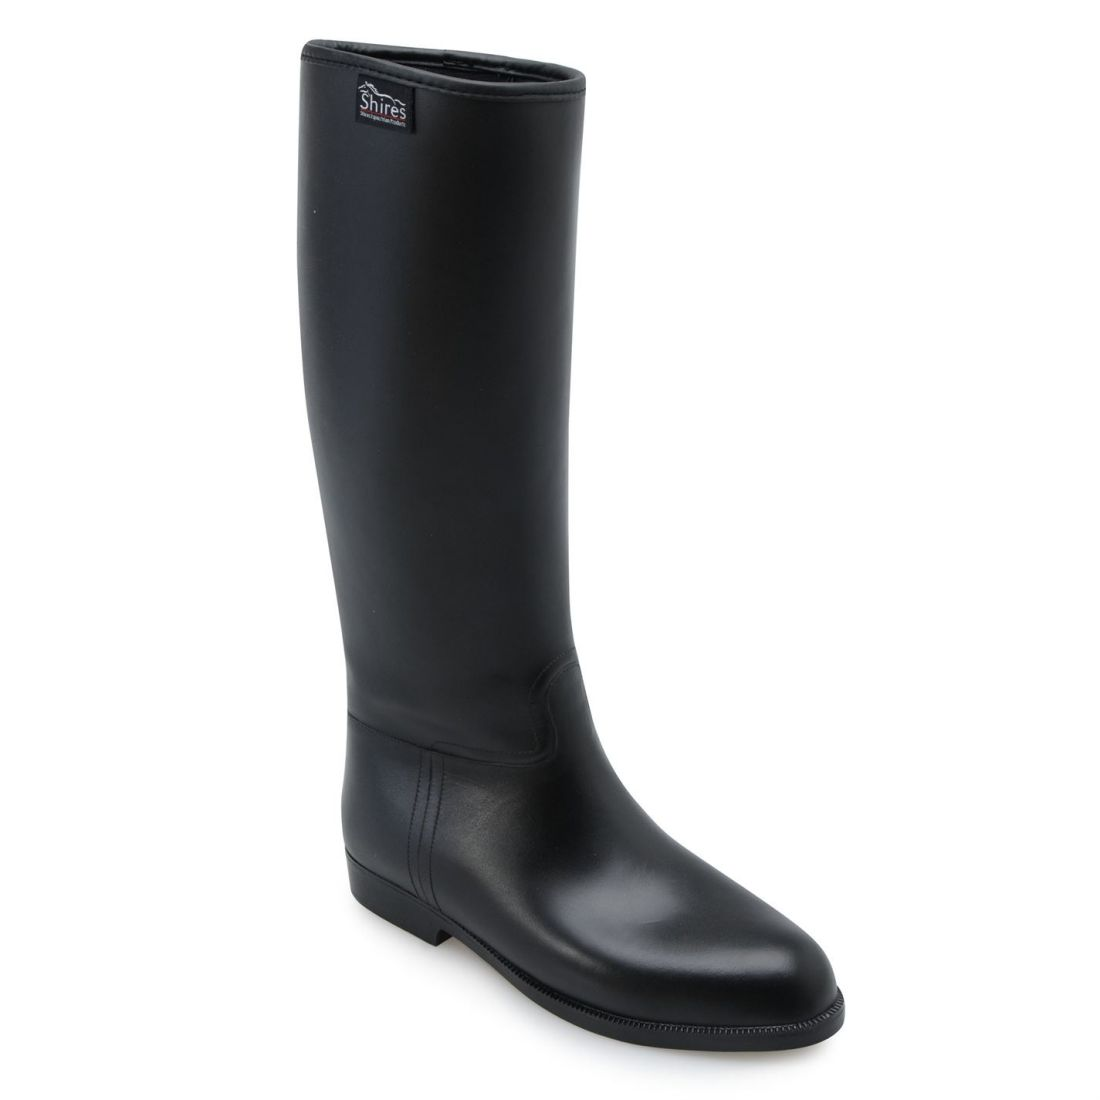 Rubber Gents Hombre Riding Long Jodhpur Pull Boots Shires Negro On dpq4wUd